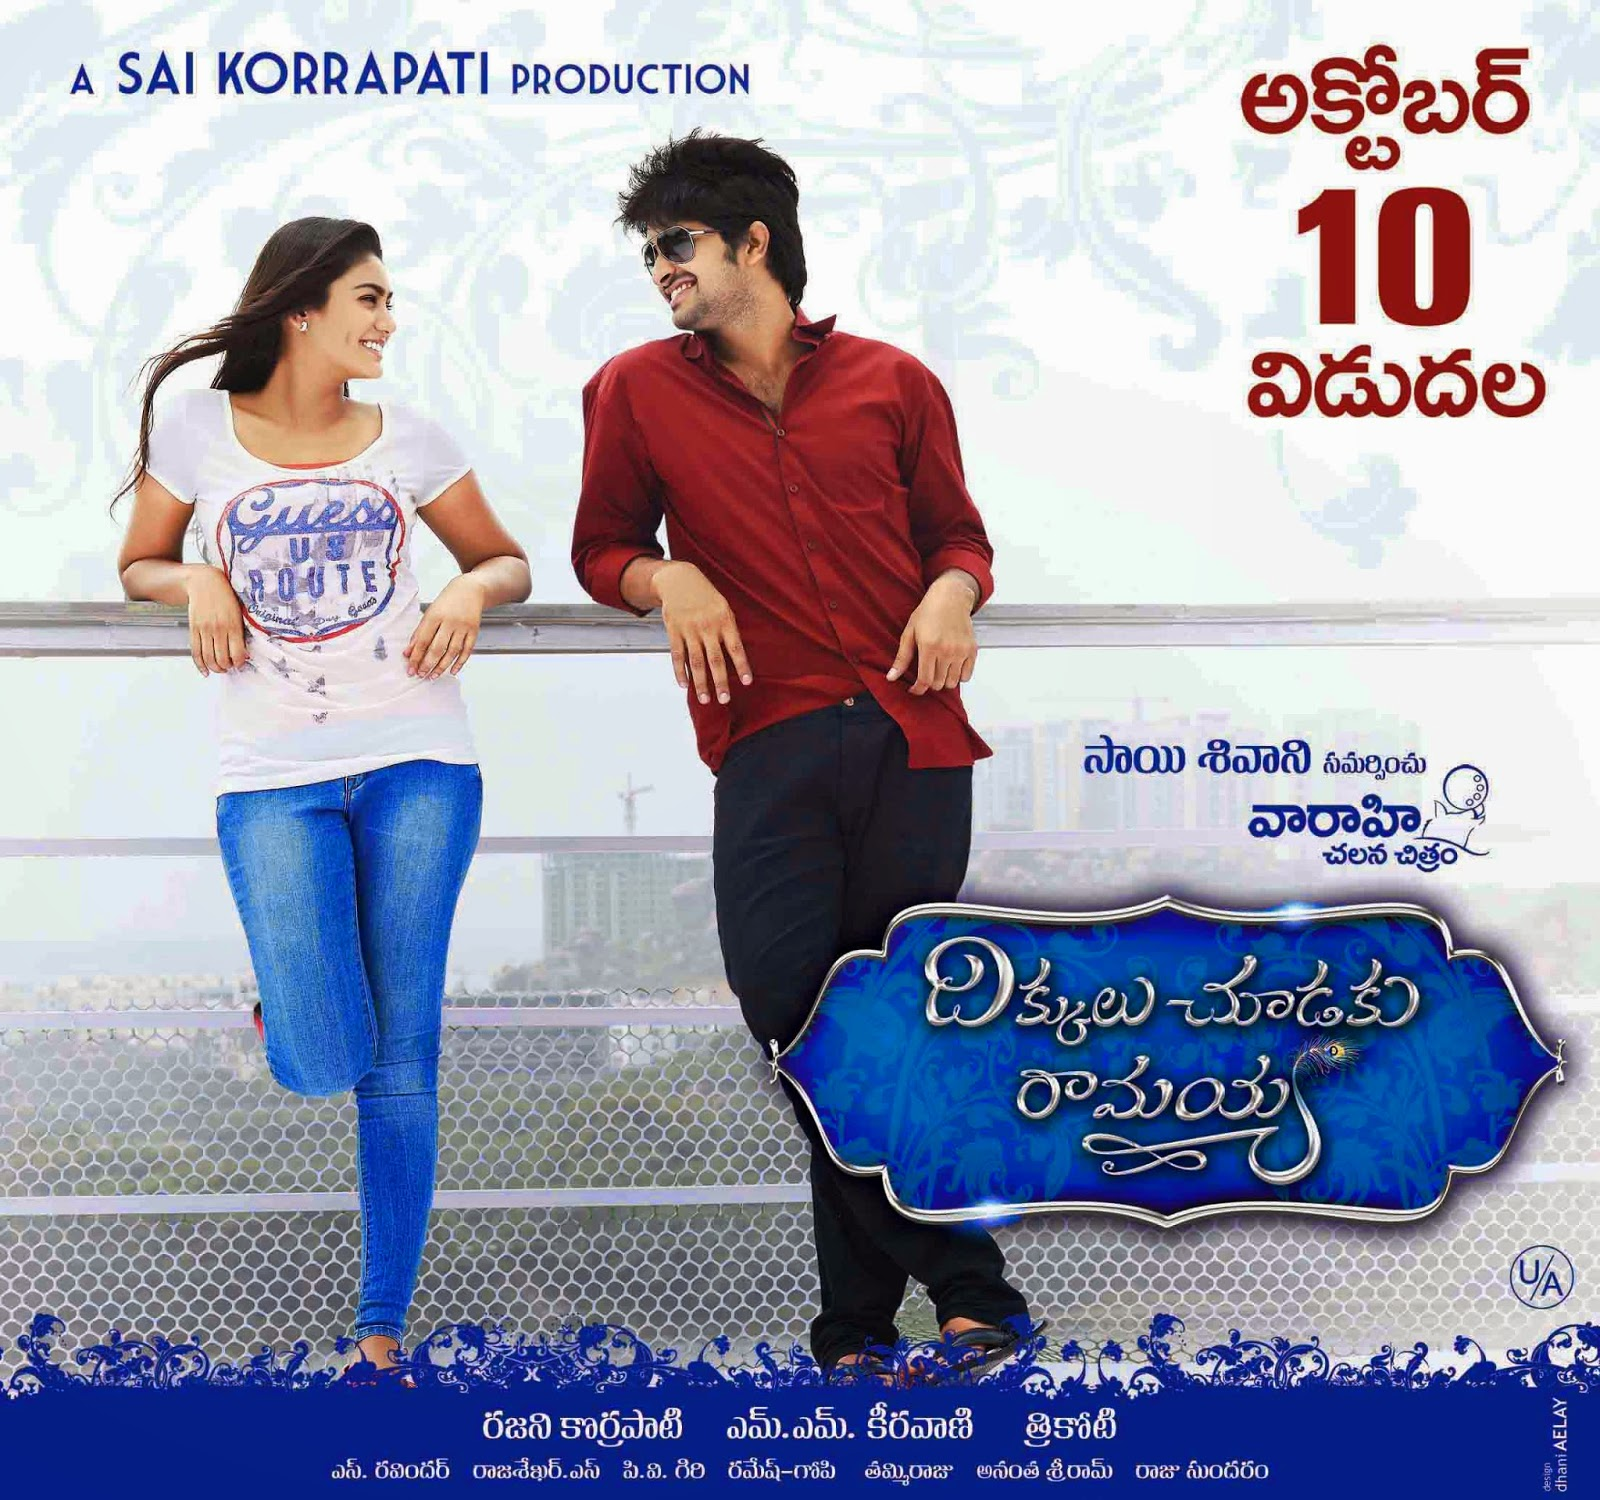 Watch Dikkulu Choodaku Ramayya (2014) DVDScr Telugu Full Movie Watch Online Free Download